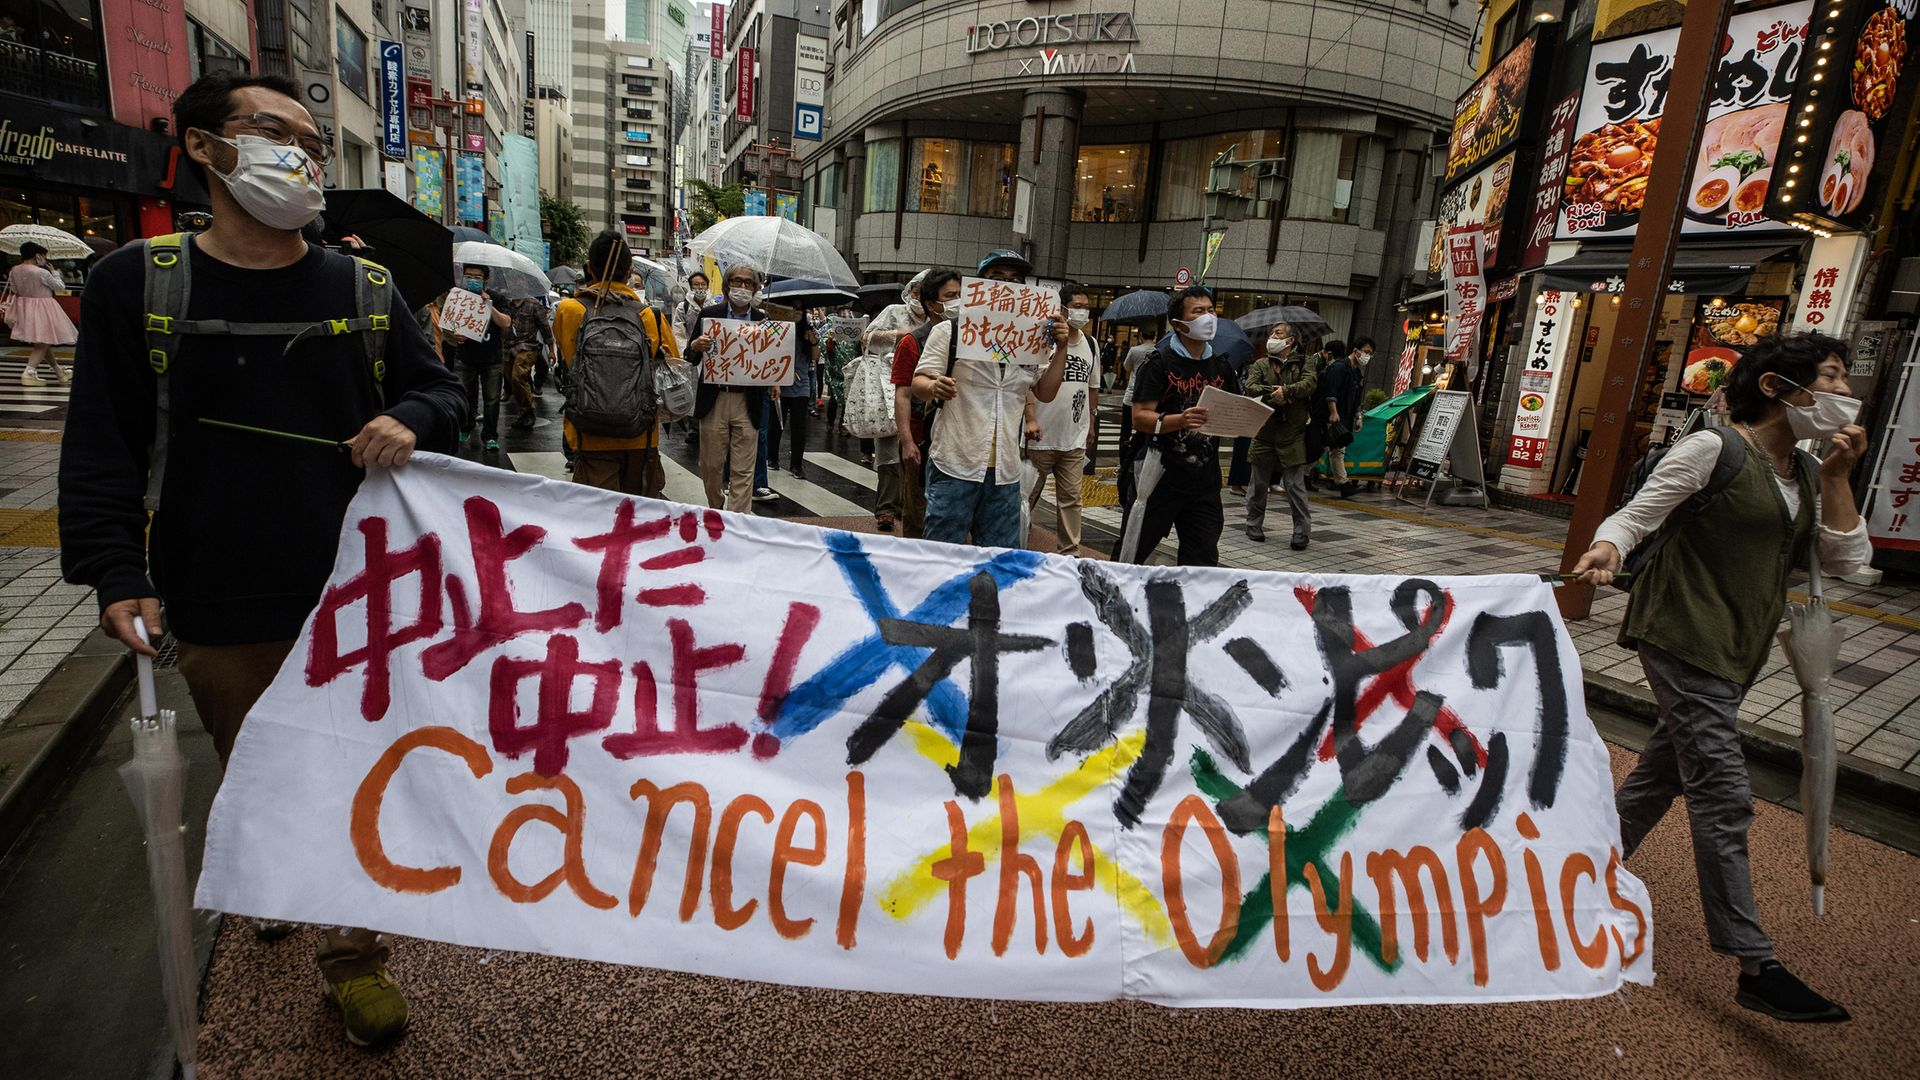 Protesters march through Shinjuku during a rally against the Tokyo 2020 Olympic Games on June 19, 2021 - Credit: Photo by Takashi Aoyama/Getty Images